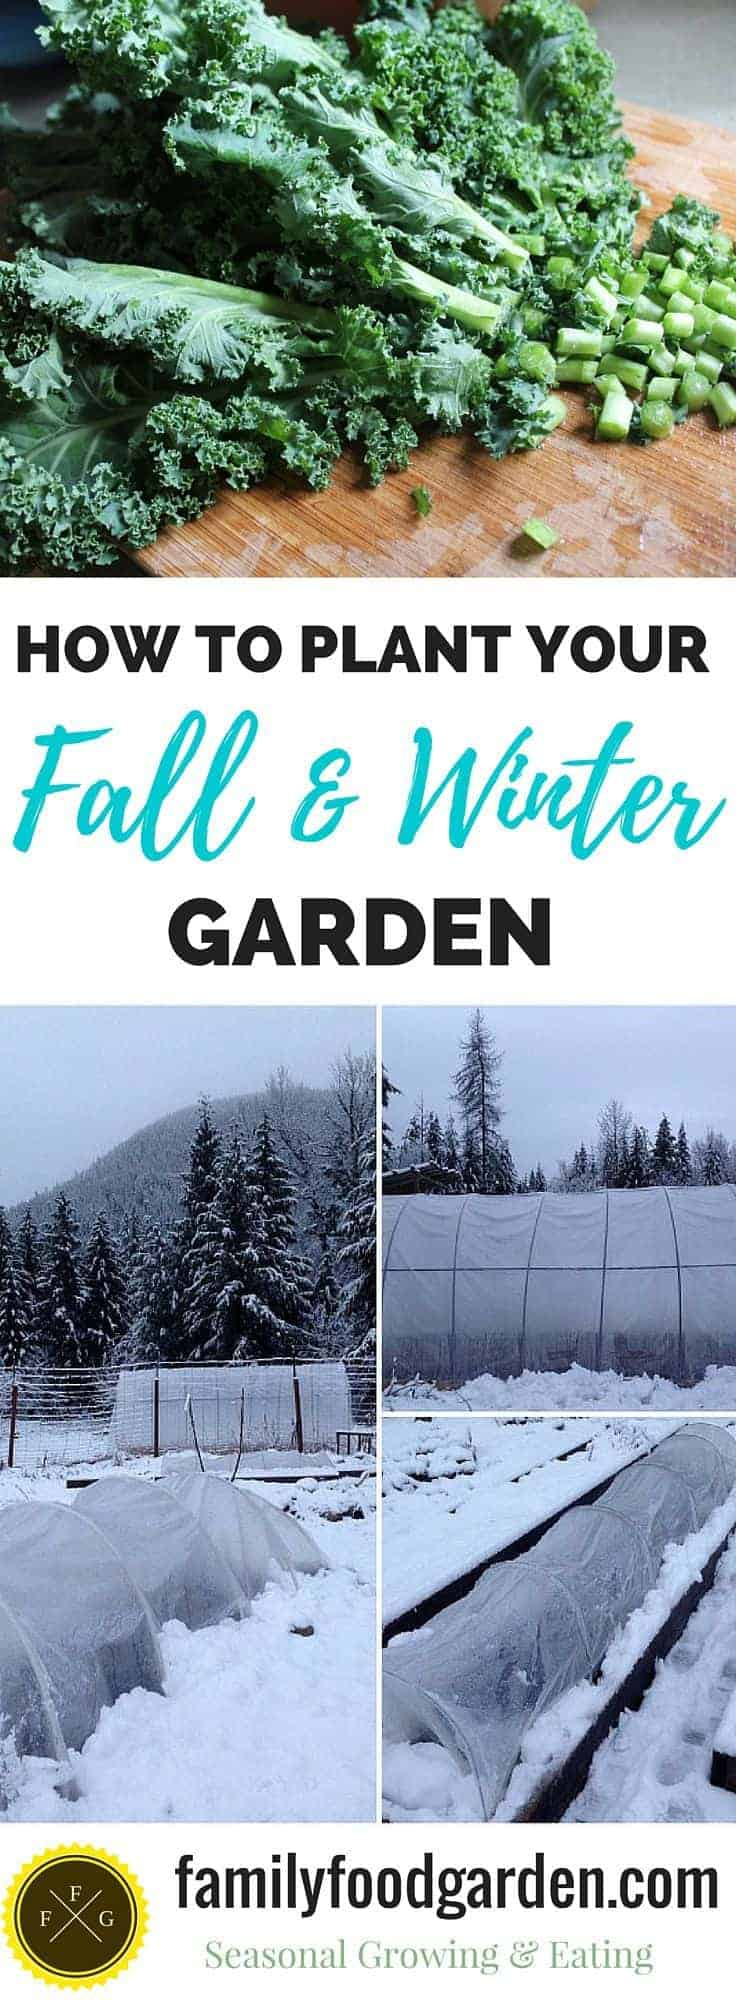 How to plan & plant your fall & winter garden